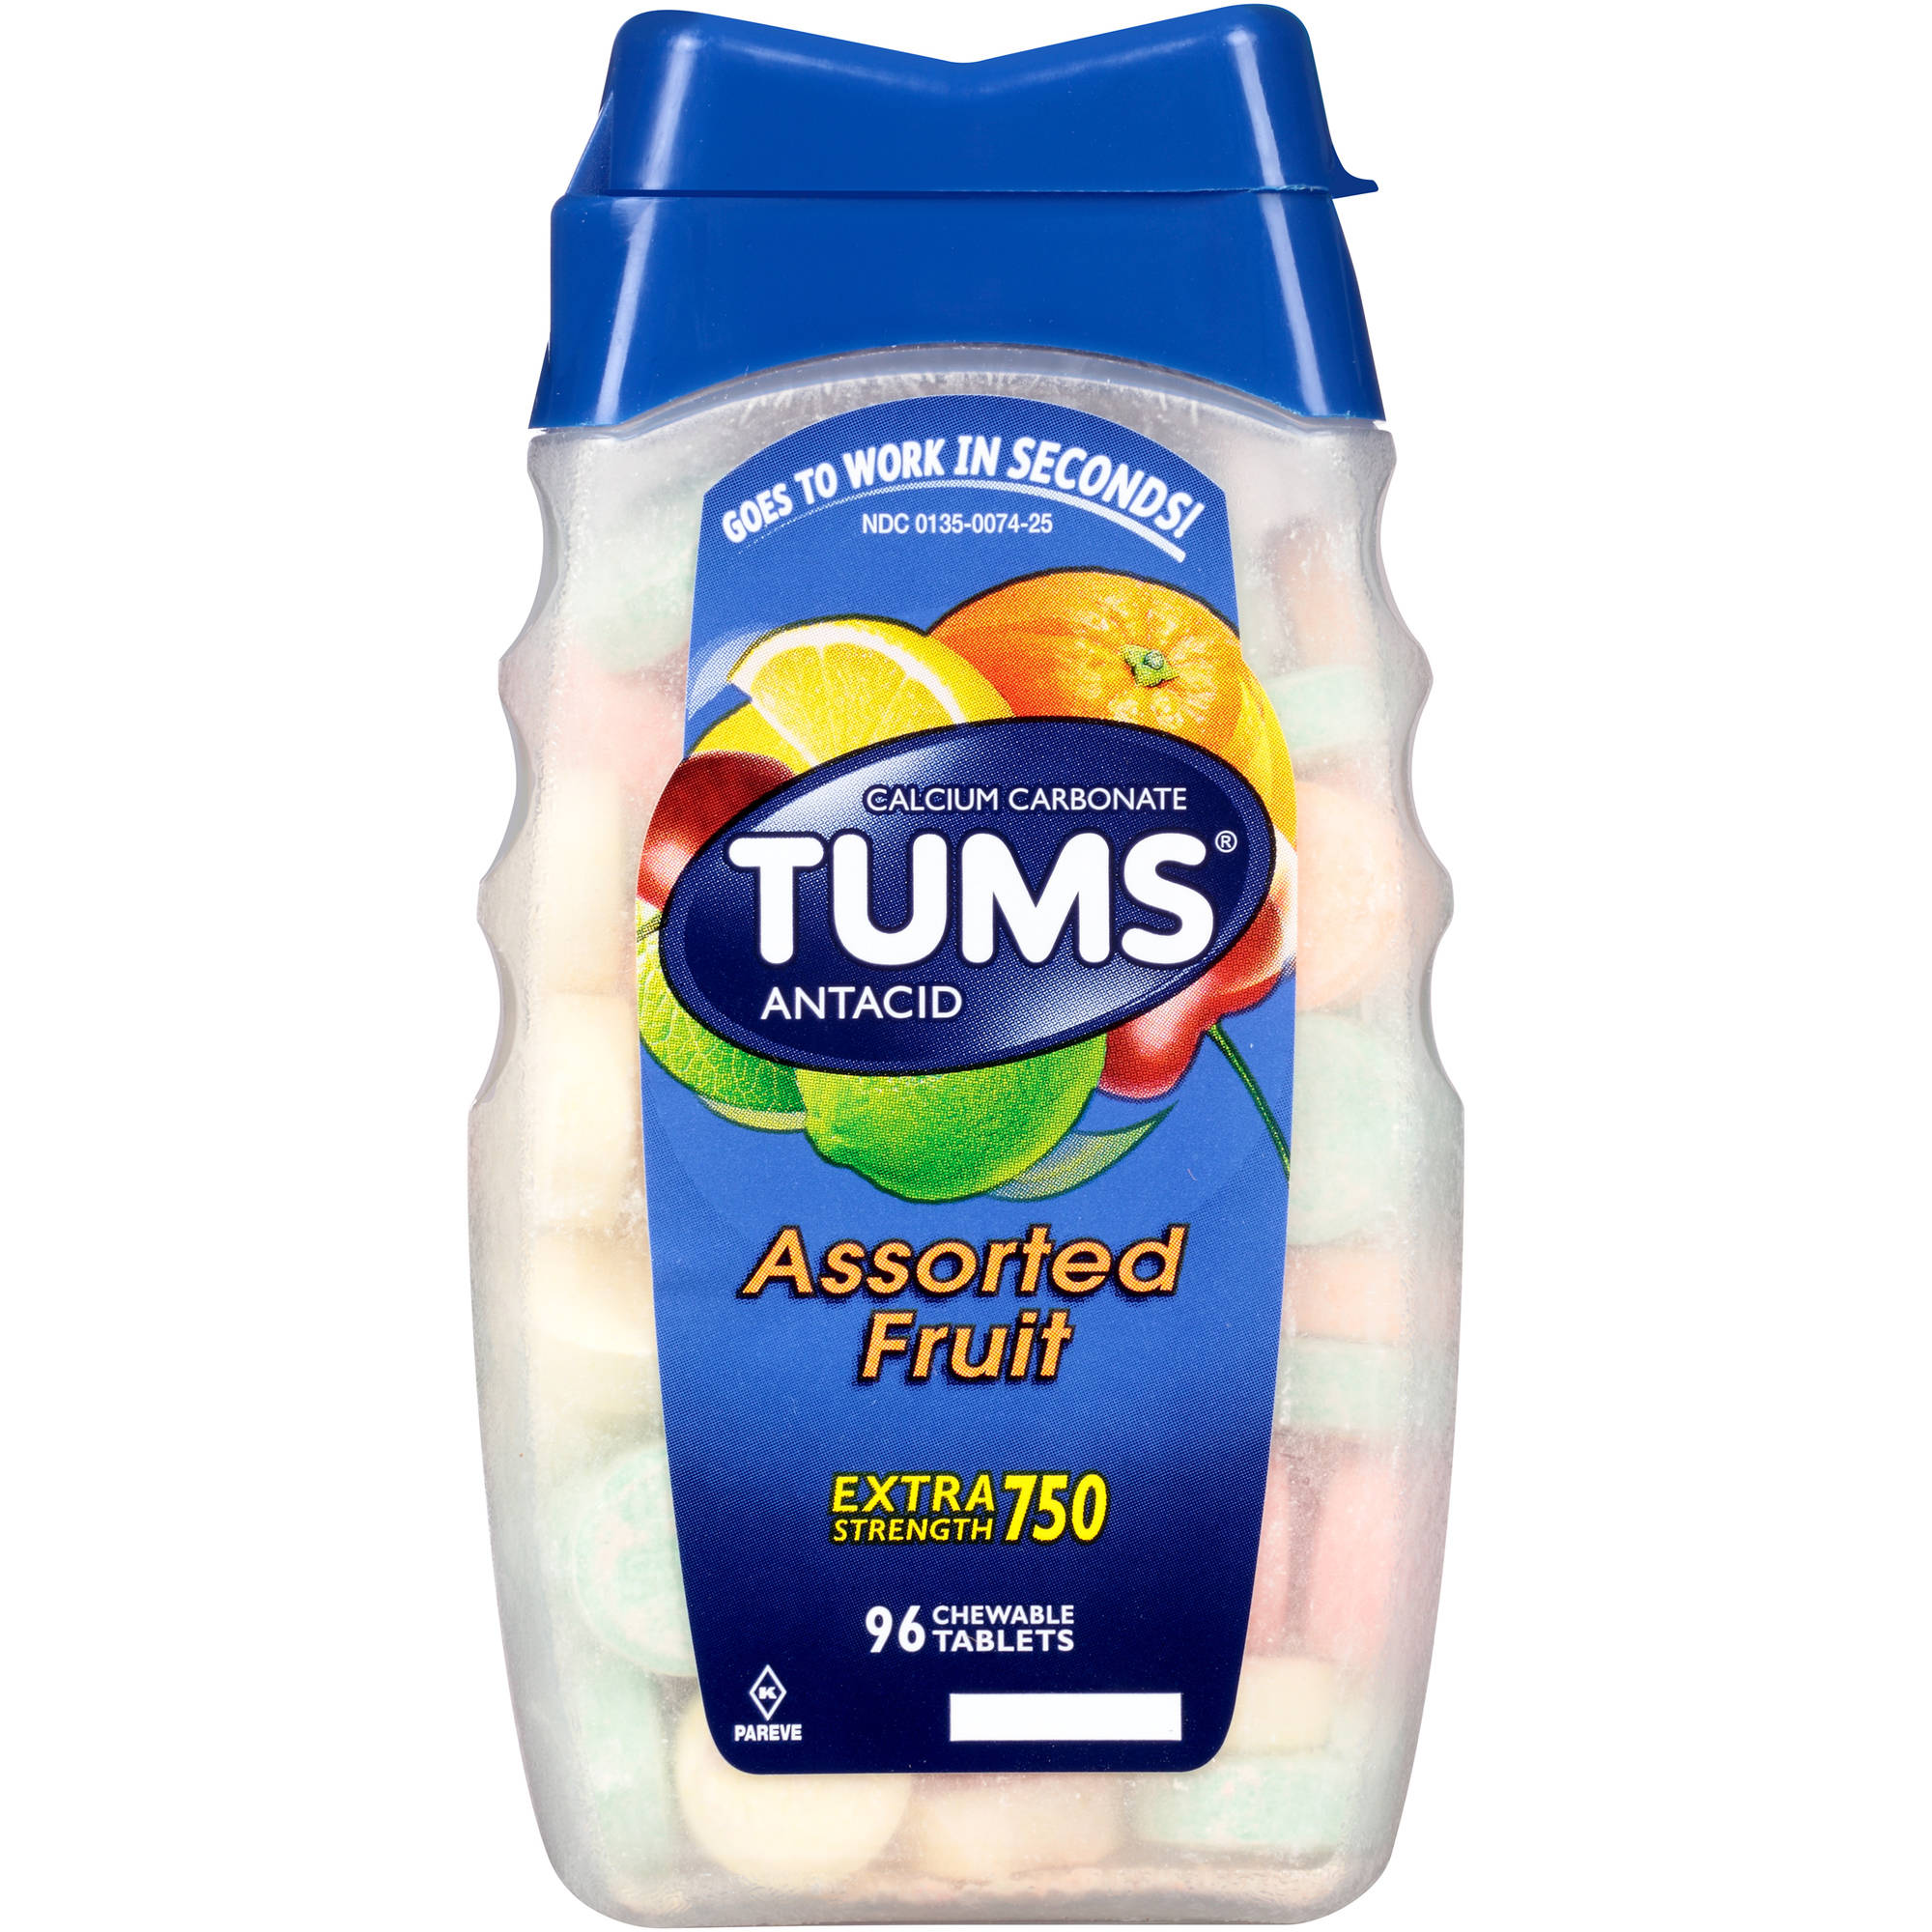 TUMS Antacid Extra Strength 750 Assorted Fruit Chewable Tablets, 96 Count